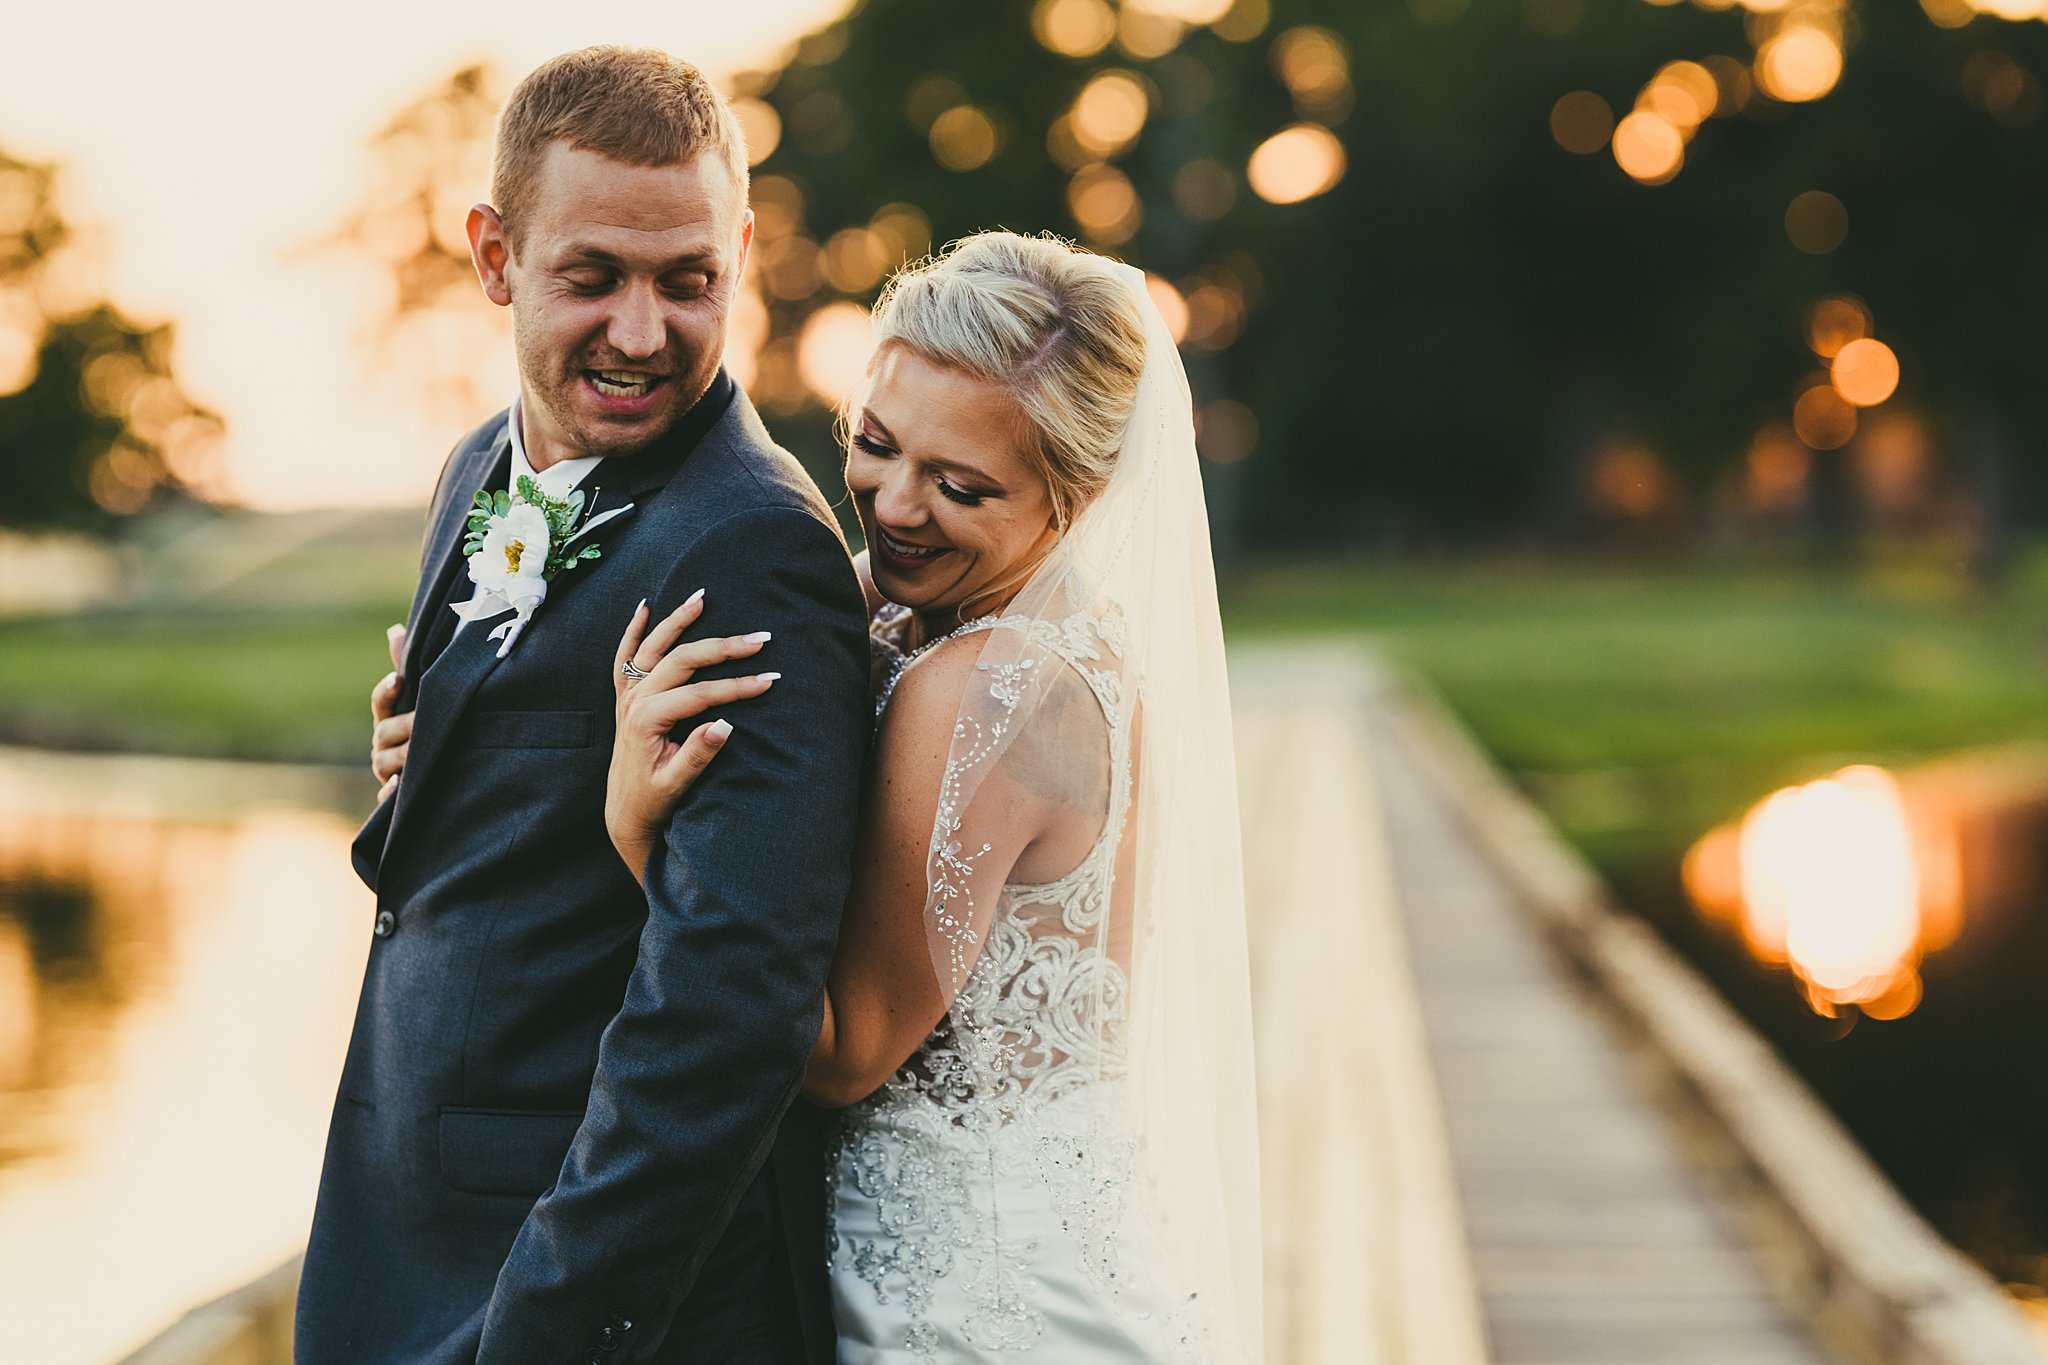 Bride and Groom Portrait by Love & Story Wedding Photographers in Perry, GA Houston Lake Country Club